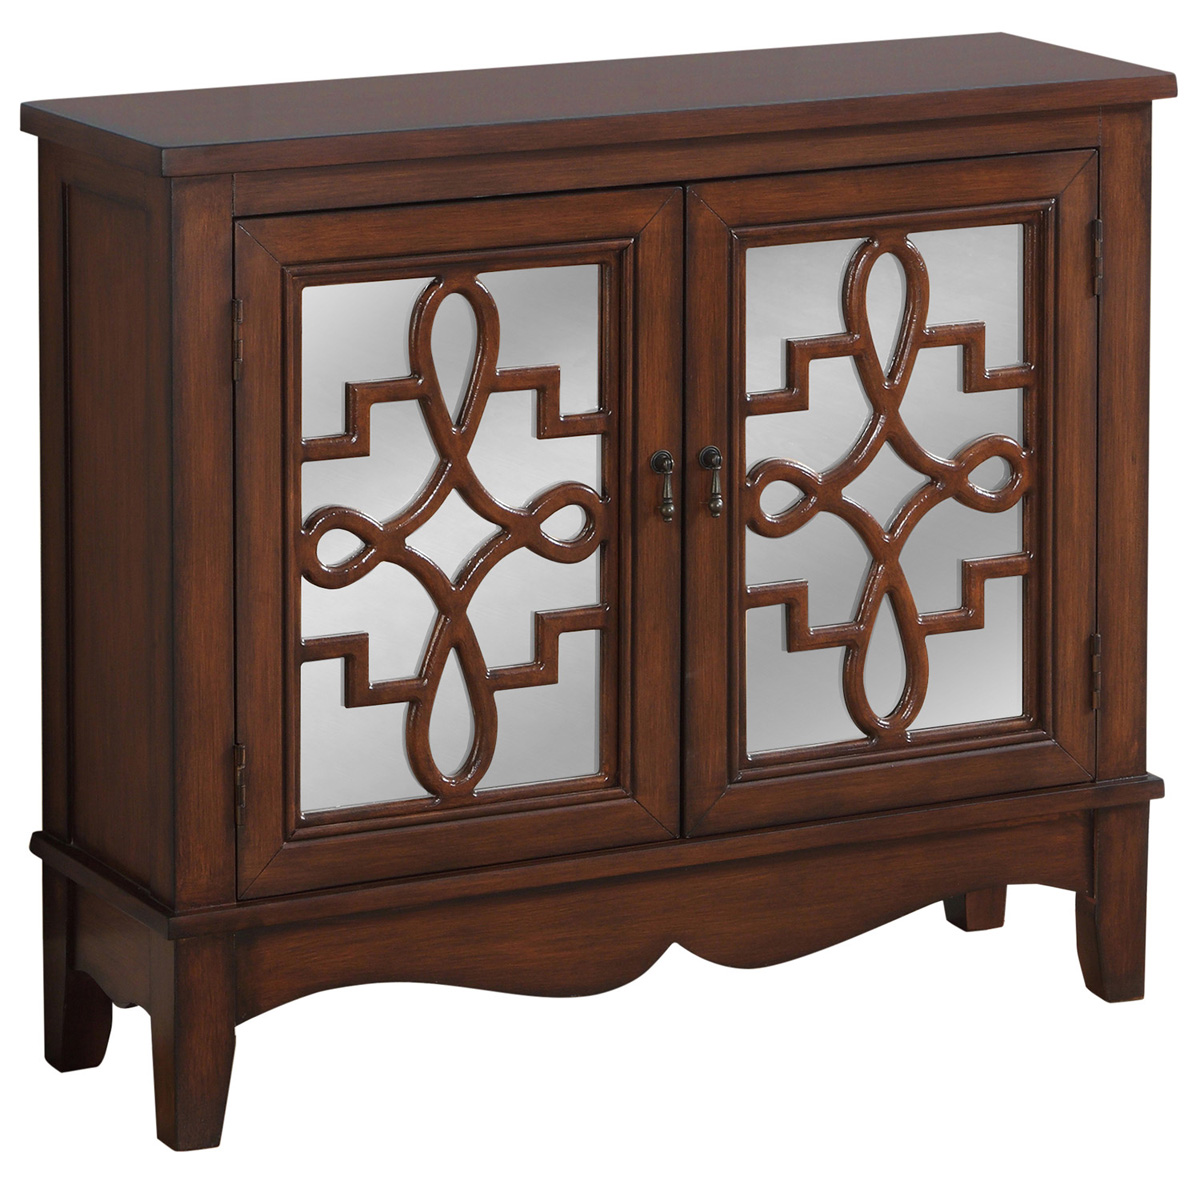 Traditional Style Accent Chest with Hidden Storage Shelf, Dark Walnut with Mirrored